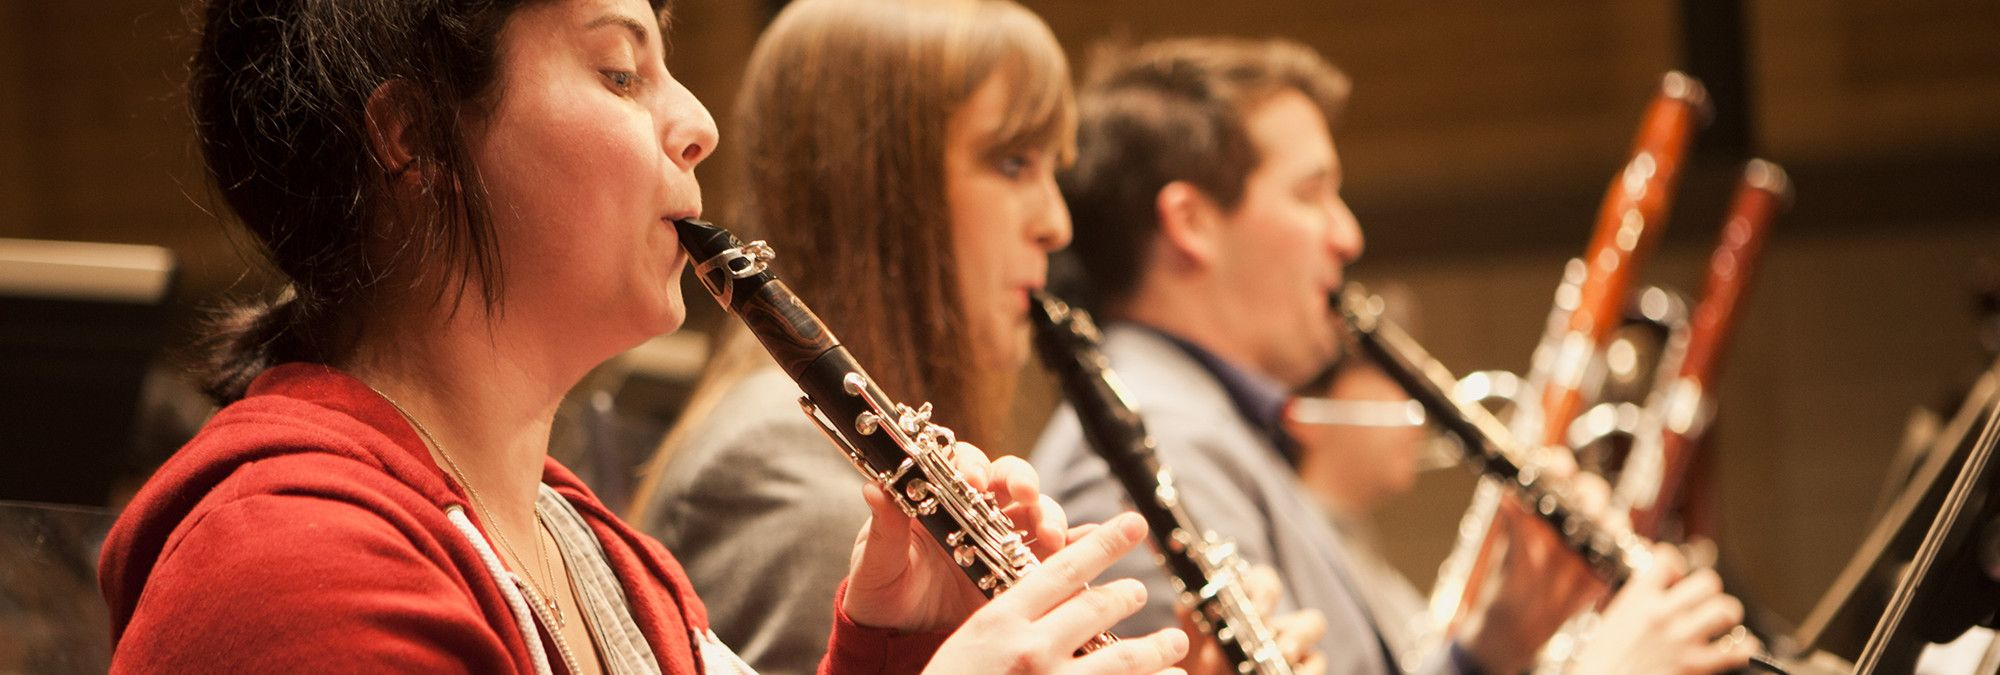 Clarinetists play in an ensemble